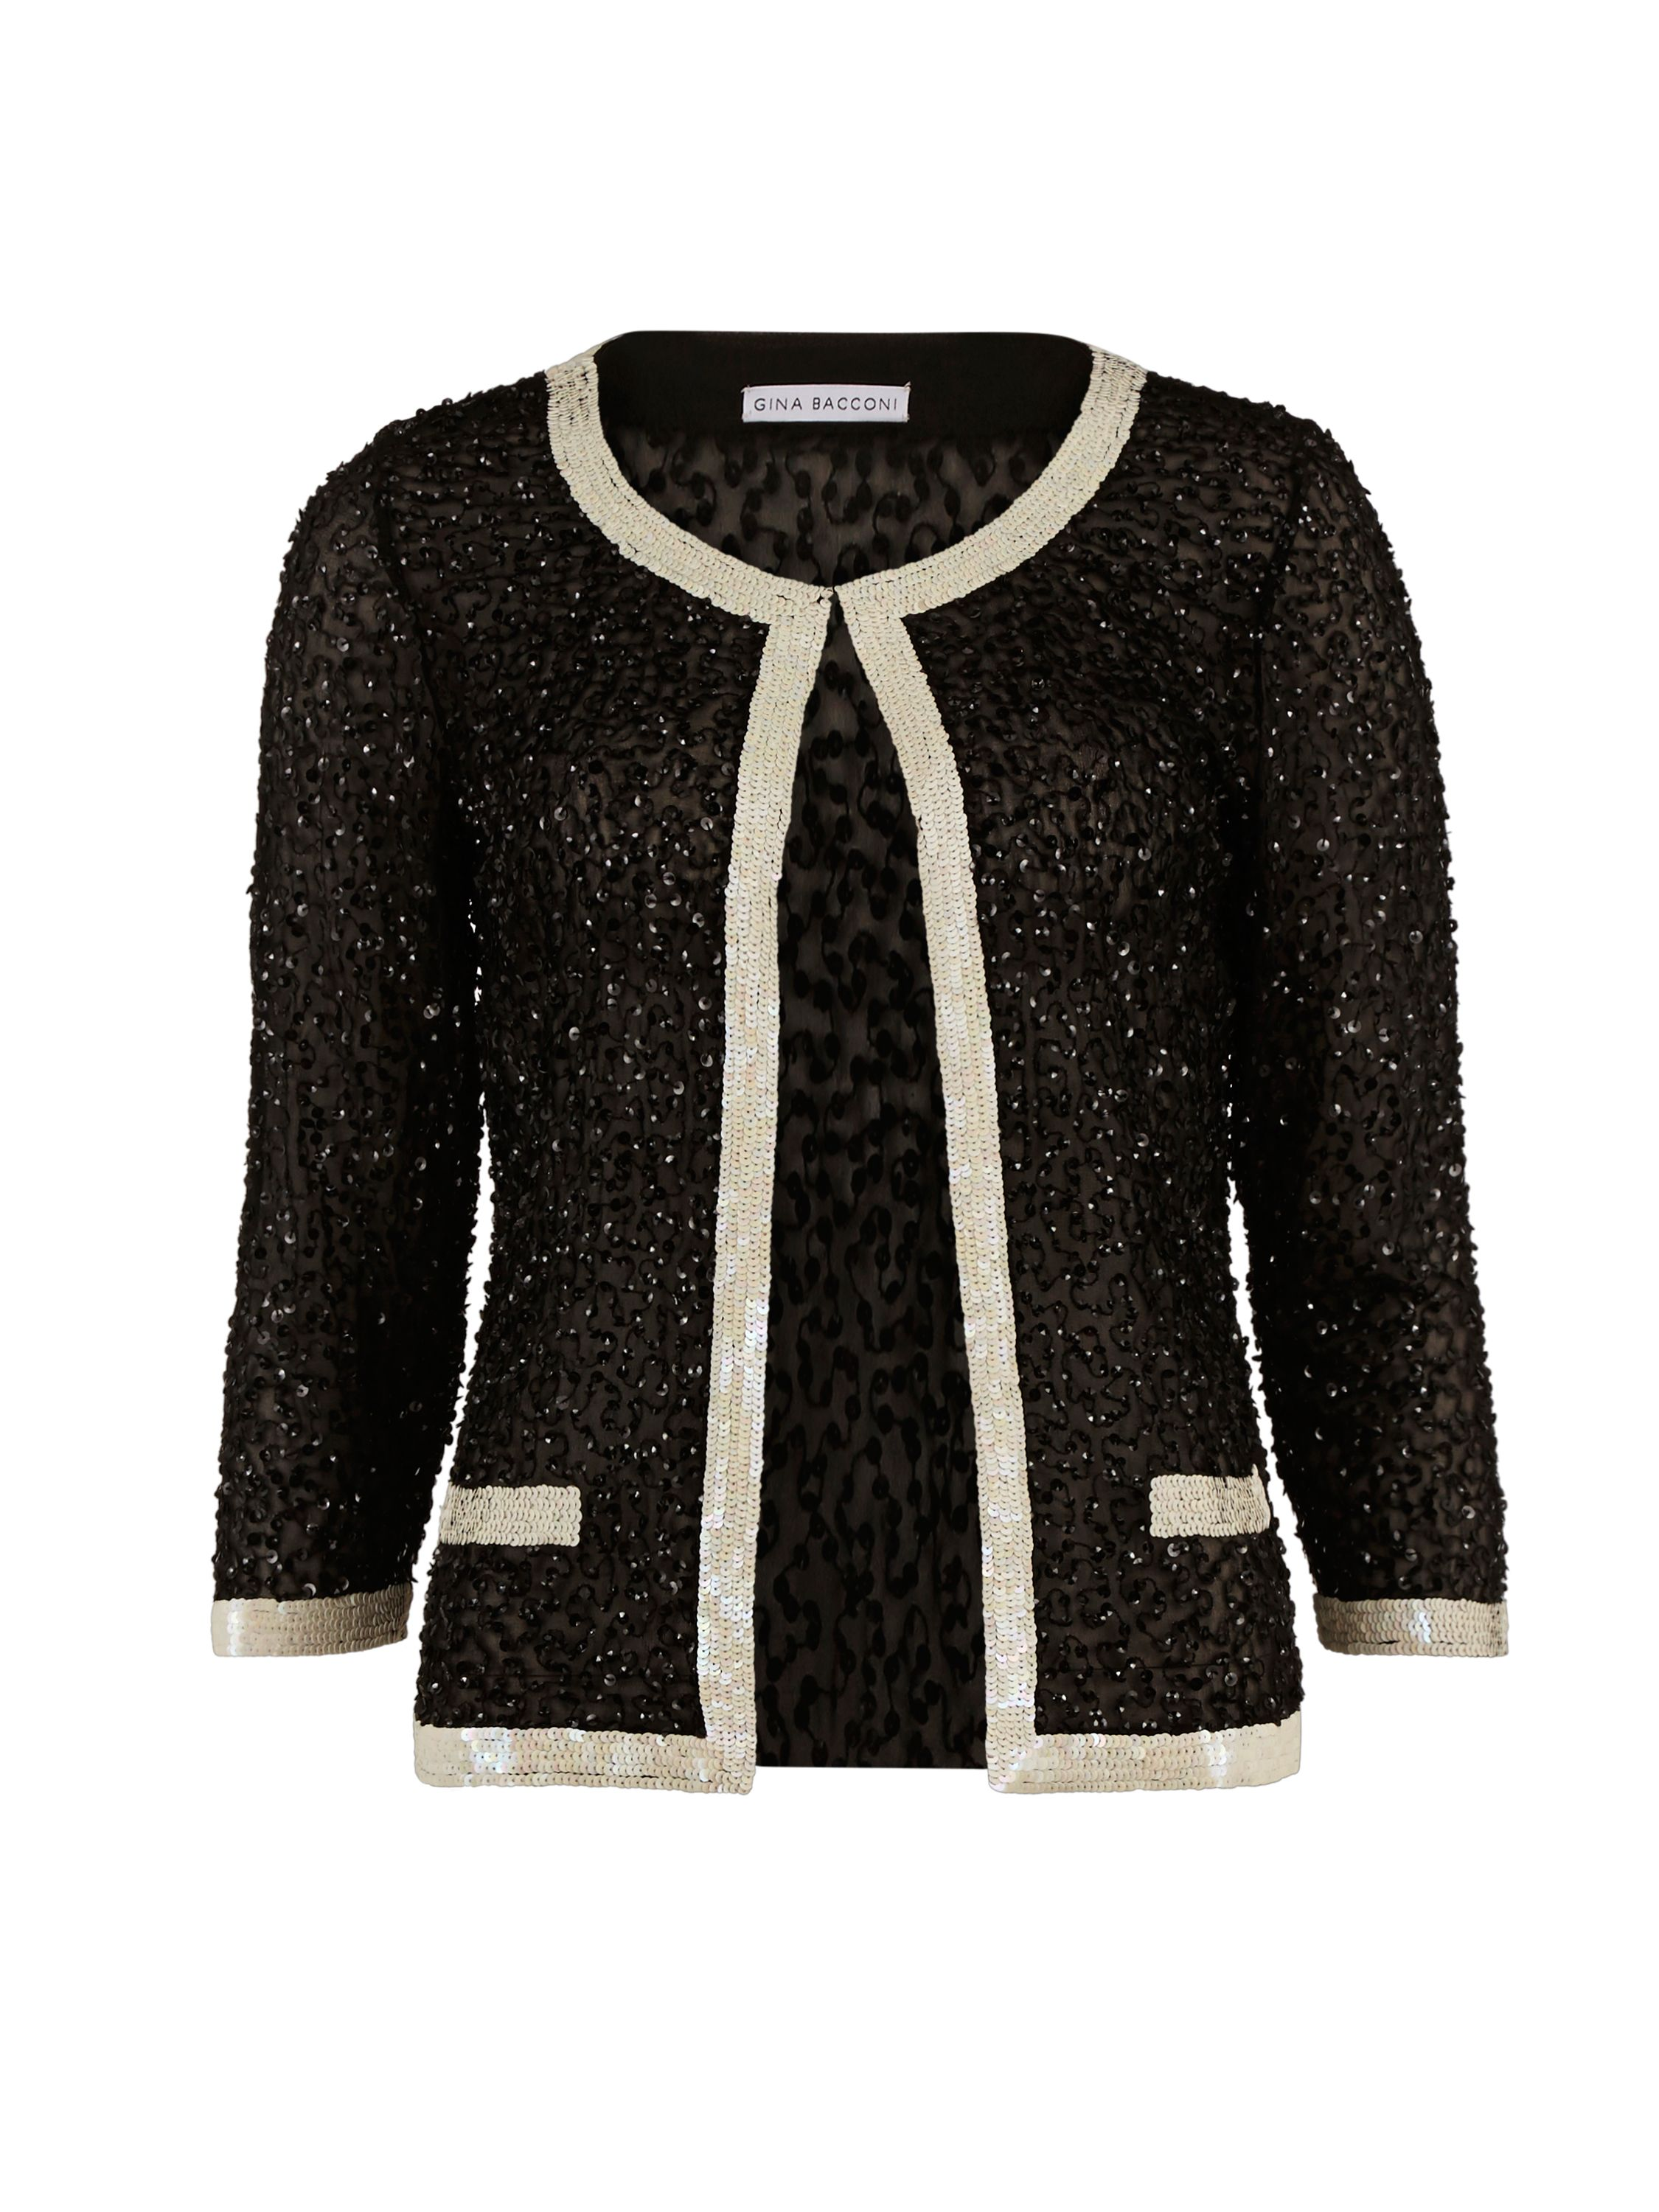 Gina Bacconi Sequin Jacket With Contrast Bands, Black